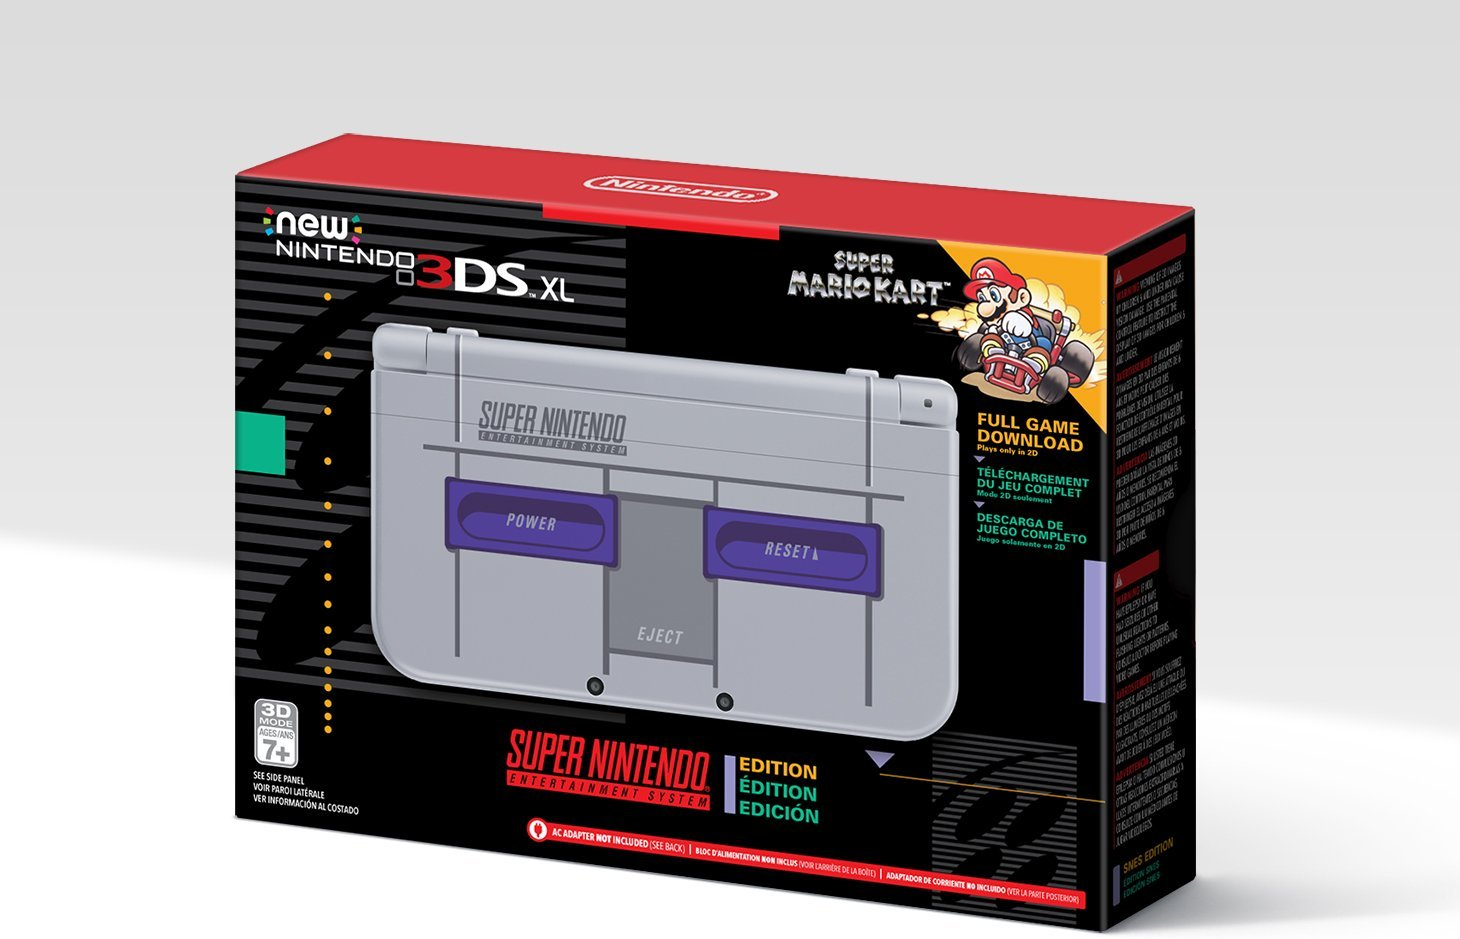 Amazon Reveals Exclusive Snes Classic Edition 3ds Xl Shacknews